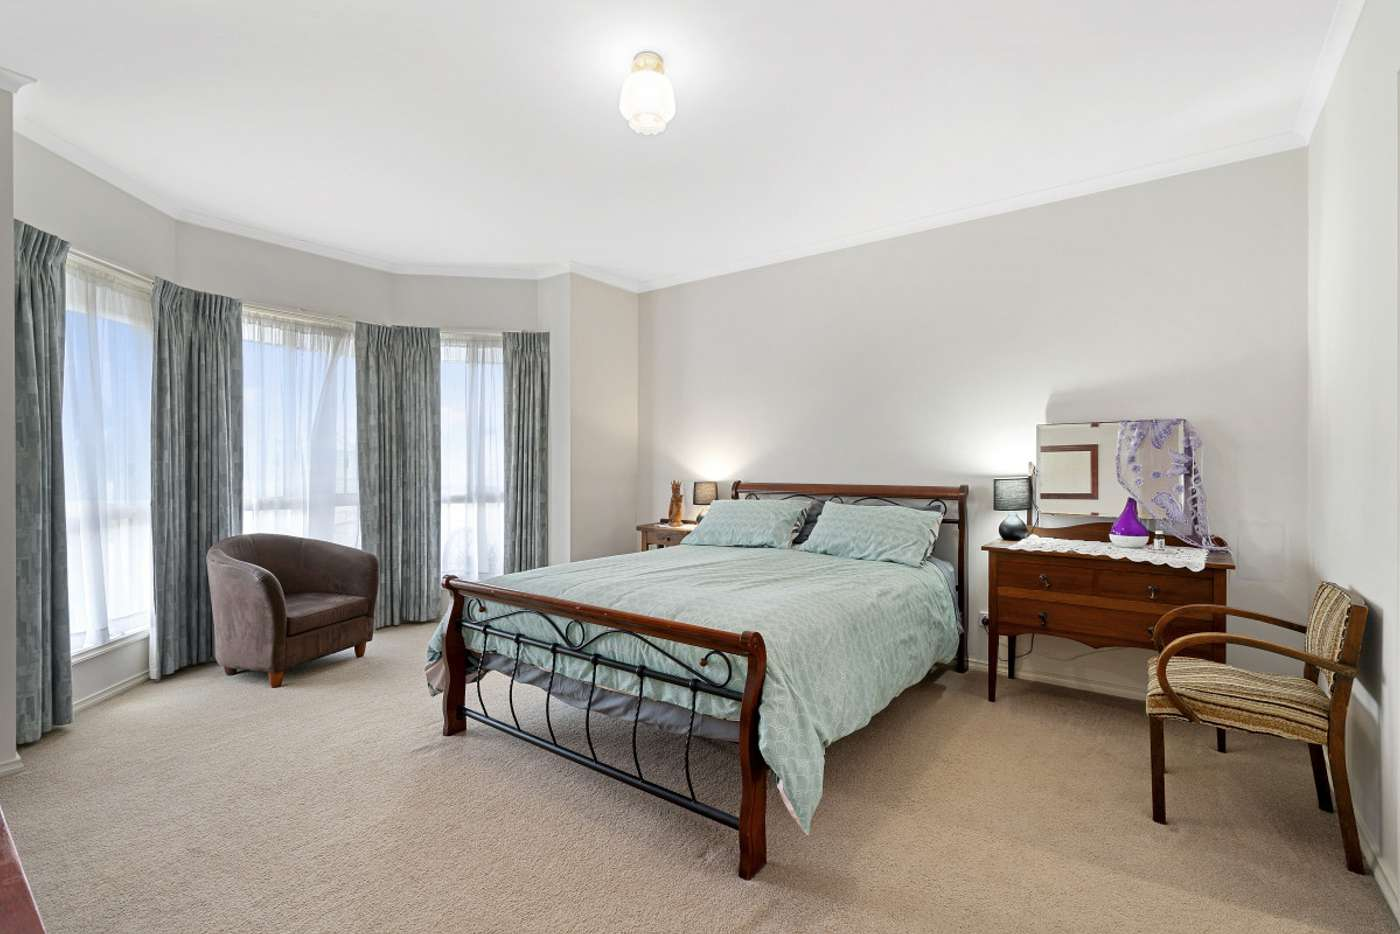 Seventh view of Homely house listing, 12 Galway Drive, Stratford VIC 3862